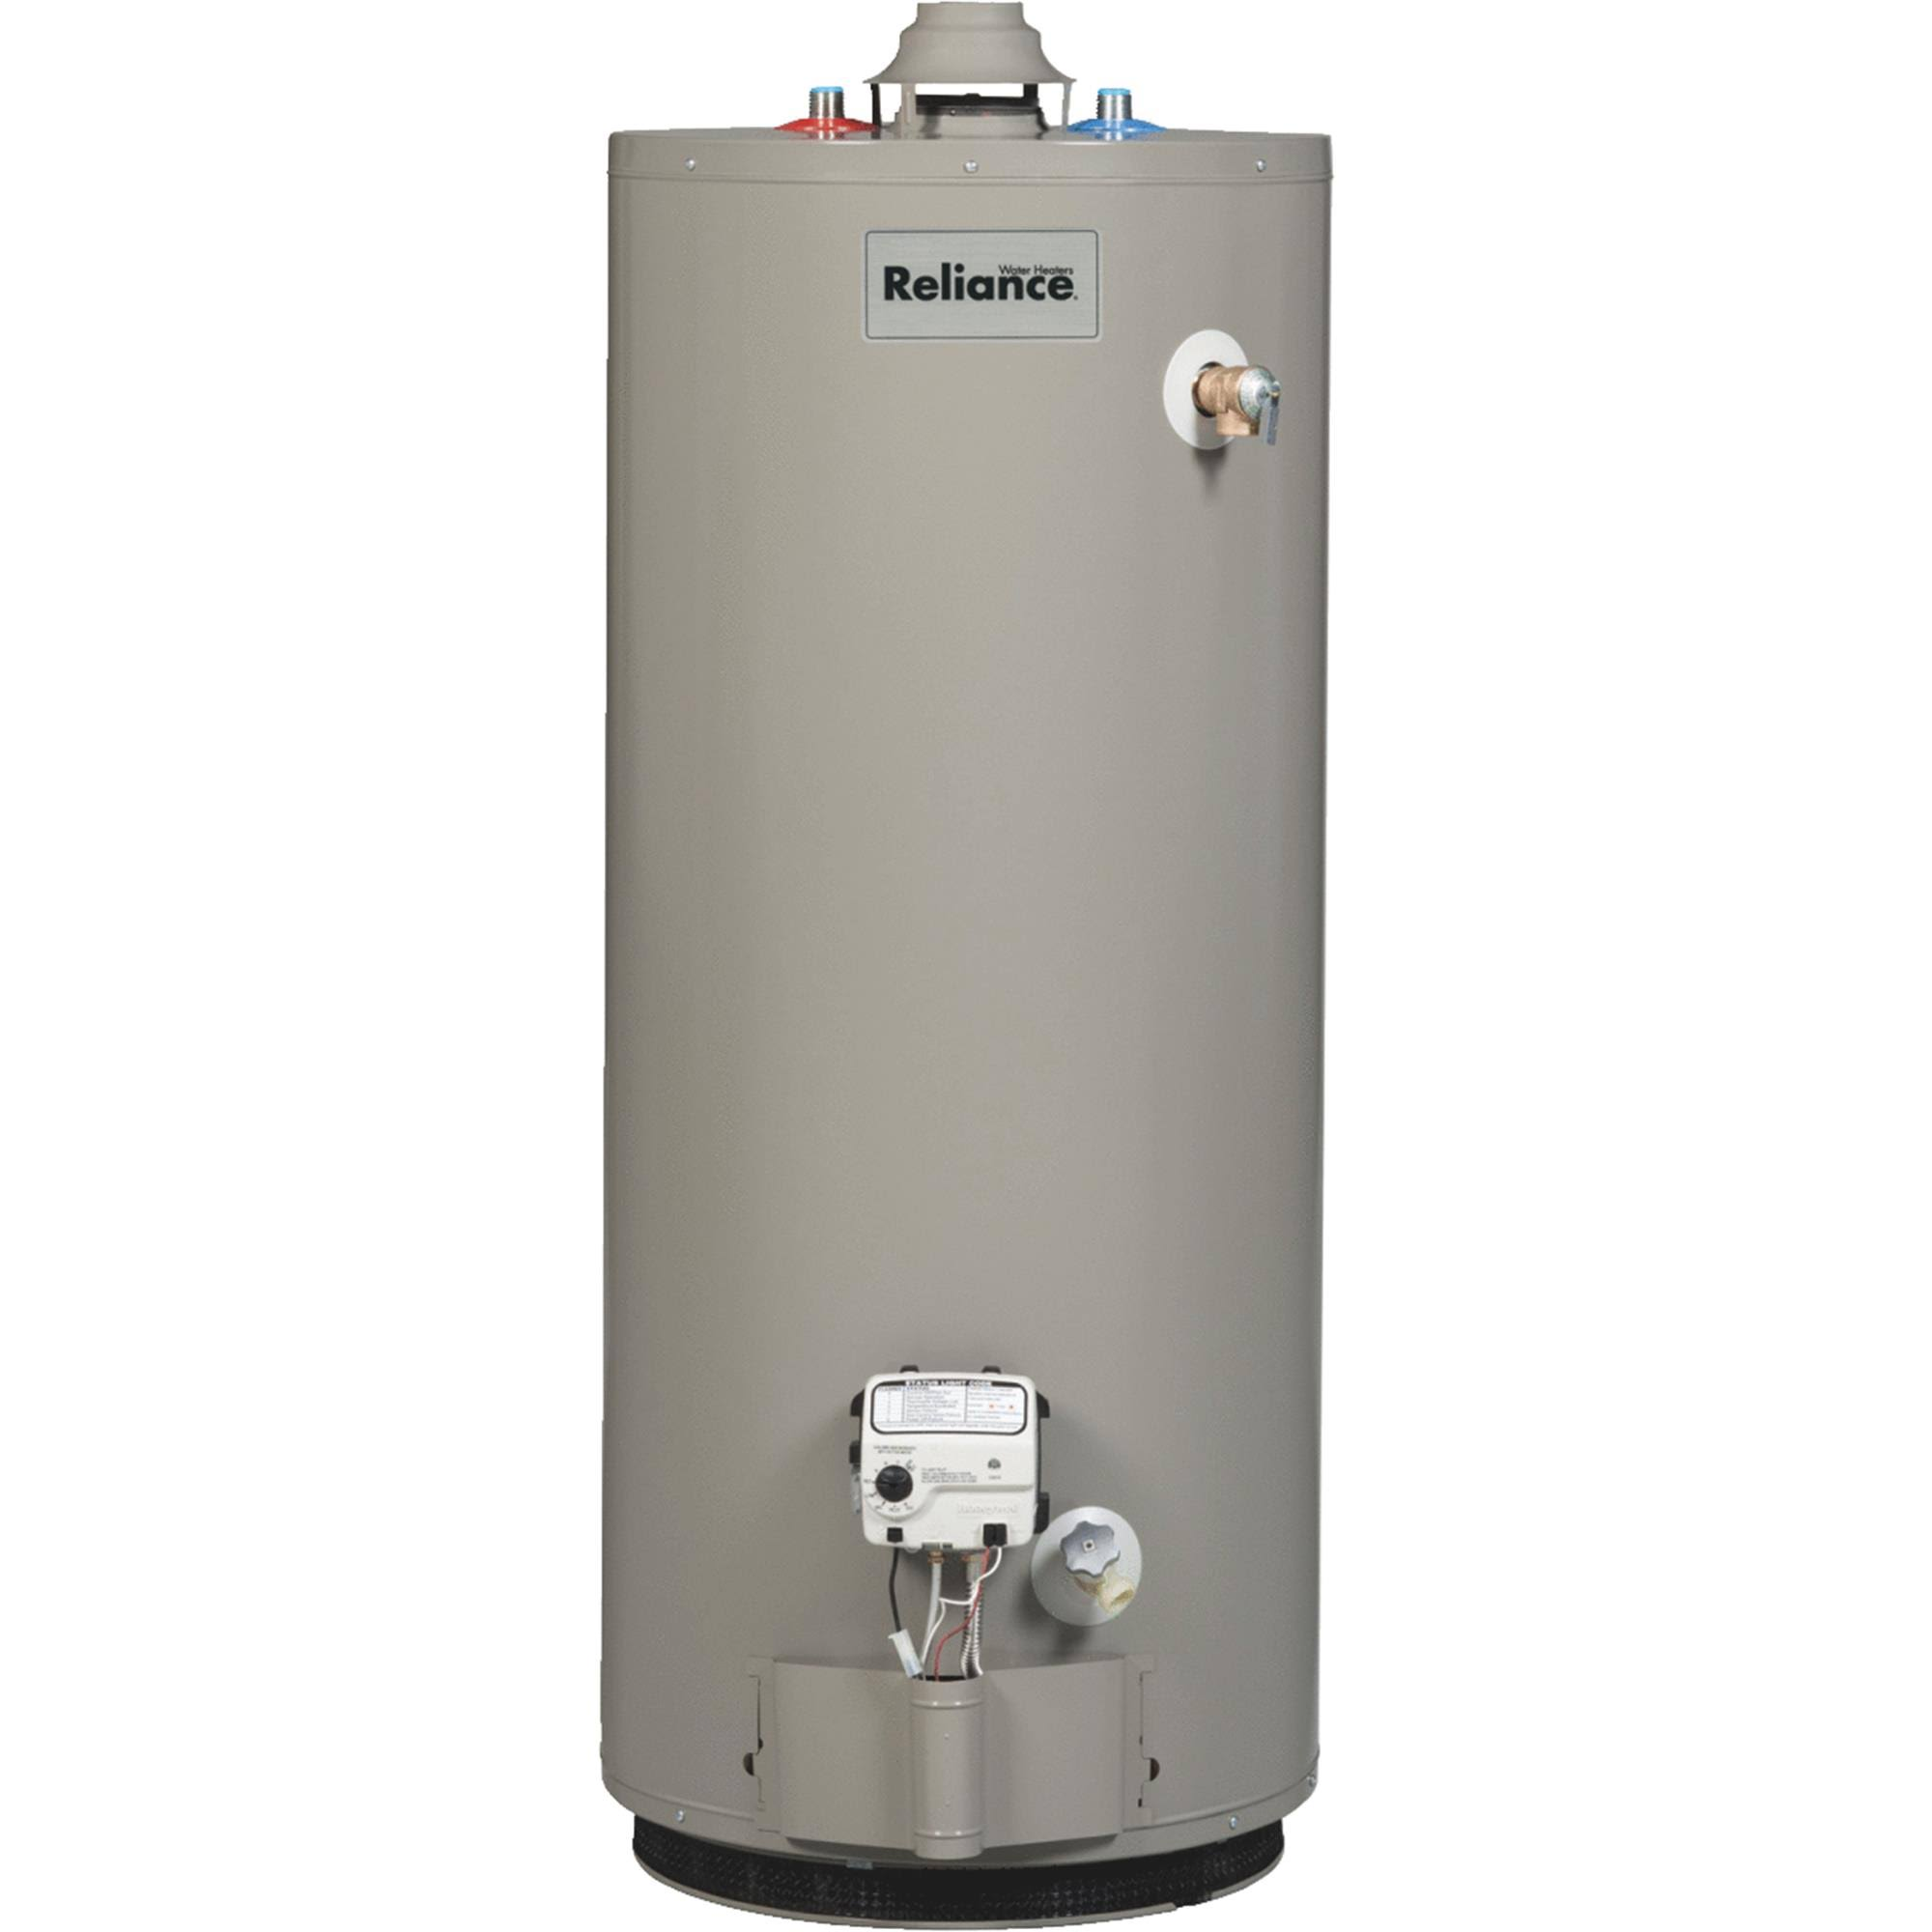 Reliance 6-40-PBCS401 LP Gas Water Heater - 40 Gallon